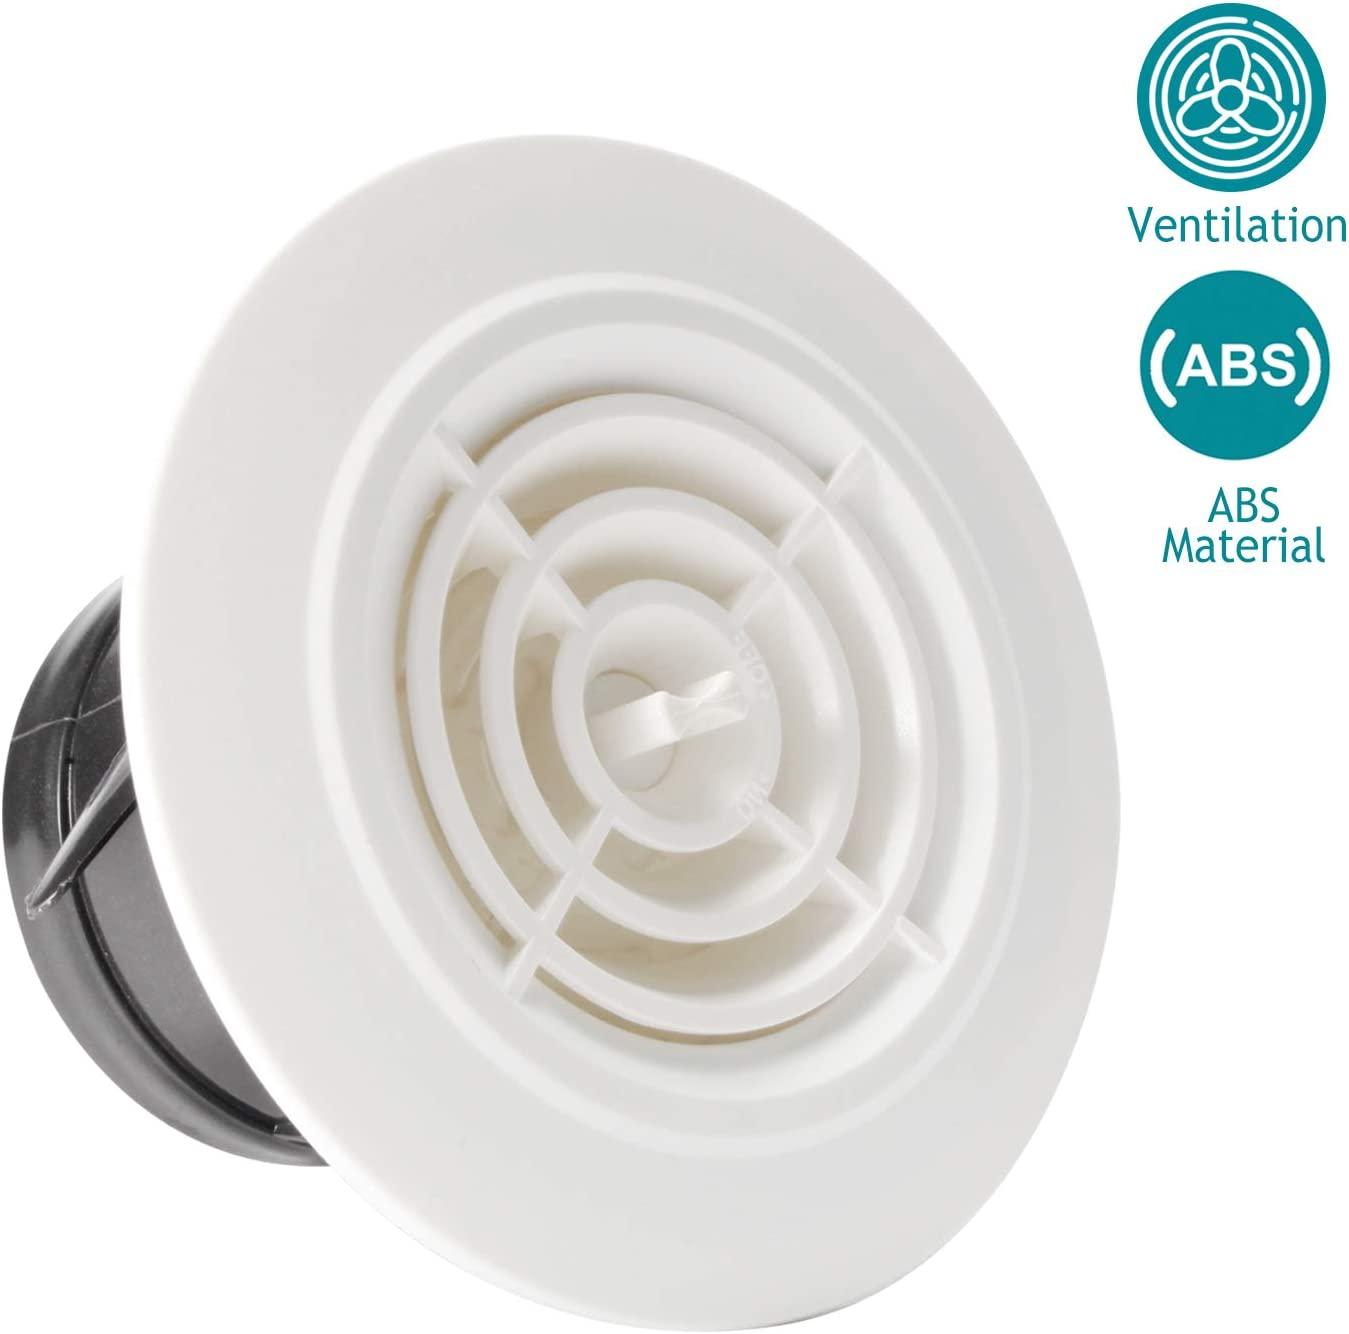 Amazon Com Hg Power 3 Inch Round Air Vent Abs Louver White Grille Cover Adjustable Exhaust Vent Fit For Bathroom Office Kitchen Ventilation Home Improvement